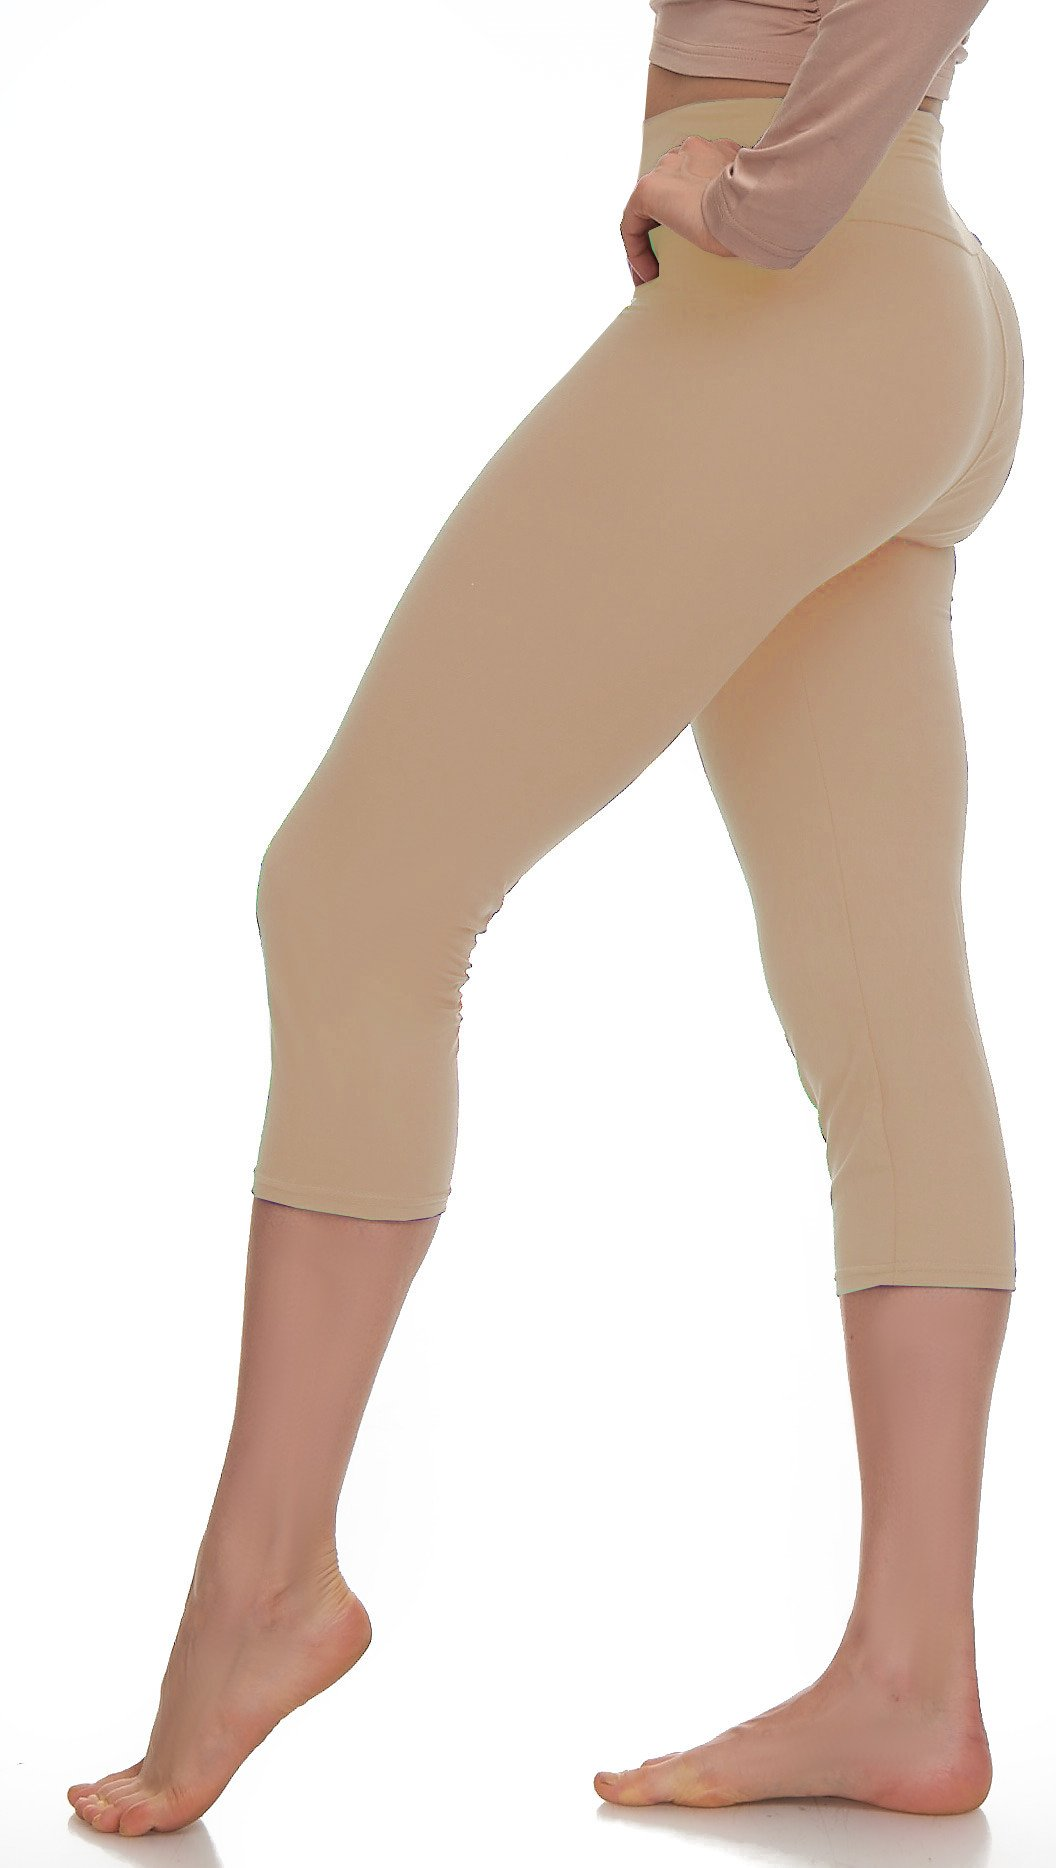 d87f22cc1799c3 Galleon - - Lush Moda Extra Soft Capri Leggings - Variety Of Colors - Yoga  Waist - Khaki 2